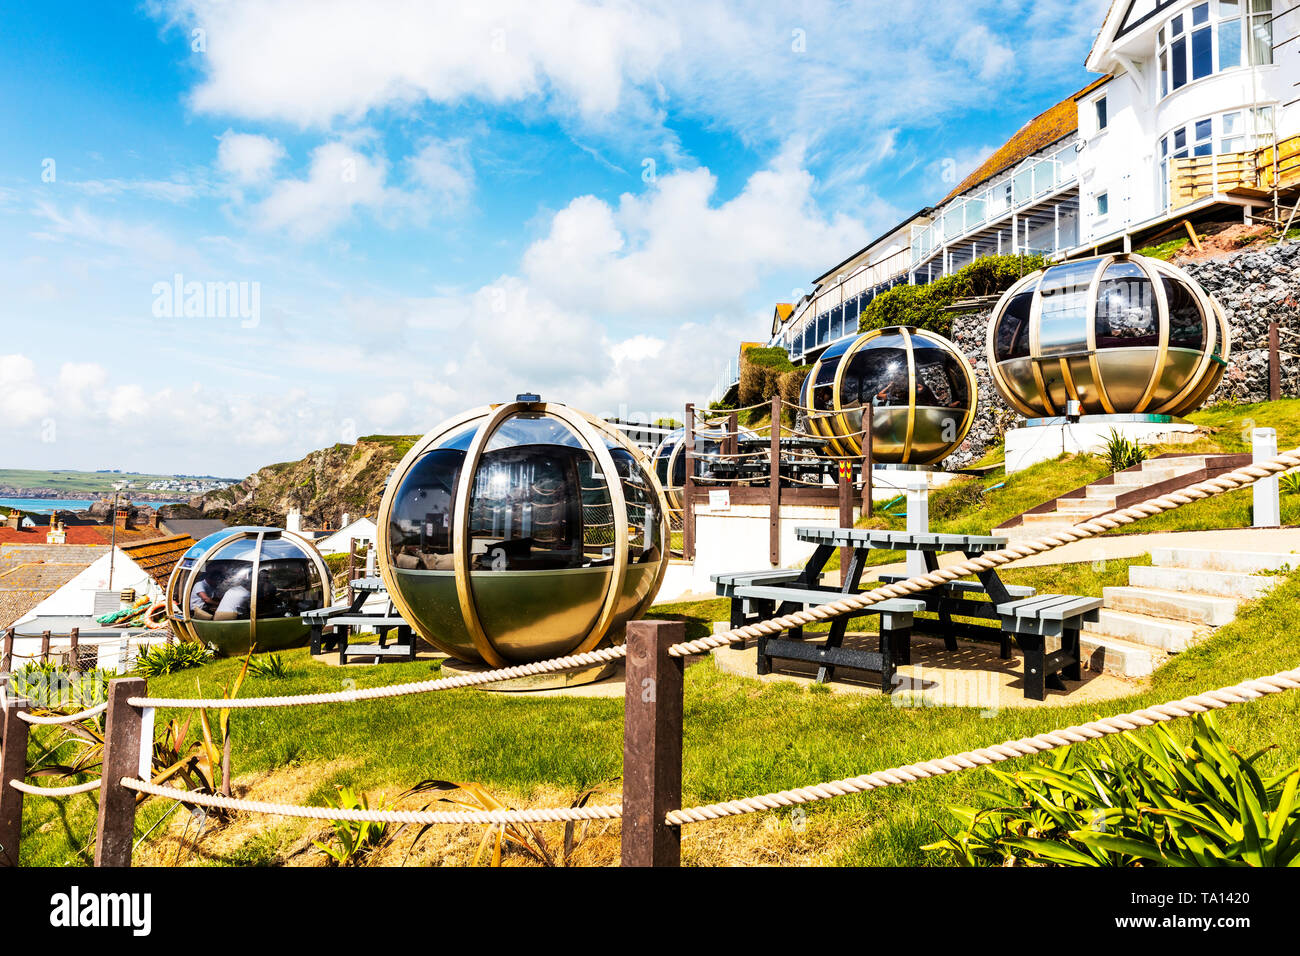 Lobster Pod Bistro in Hope Cove Devon, pod, pods, enclosed Pods, enclosed Pod, outside pods, garden pods, garden pod, summerhouse pods, summerhouses - Stock Image